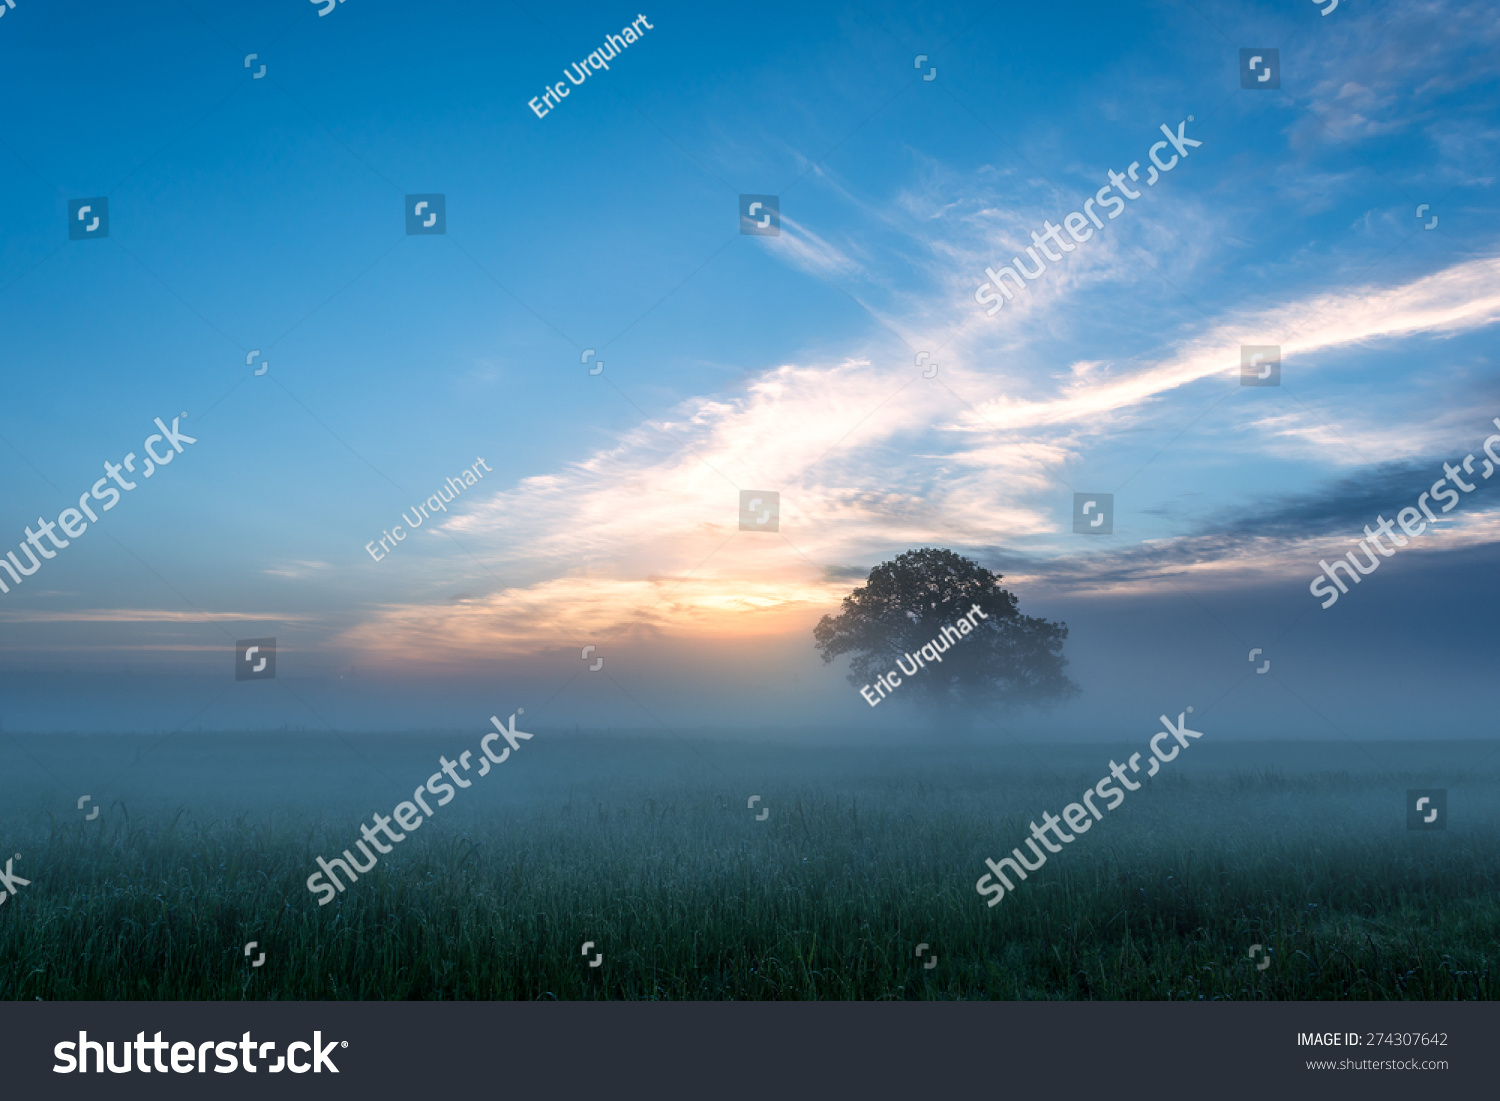 Foggy Morning On The Trinity River In Dallas, Texas Stockfoto 274307642   Shutterstock